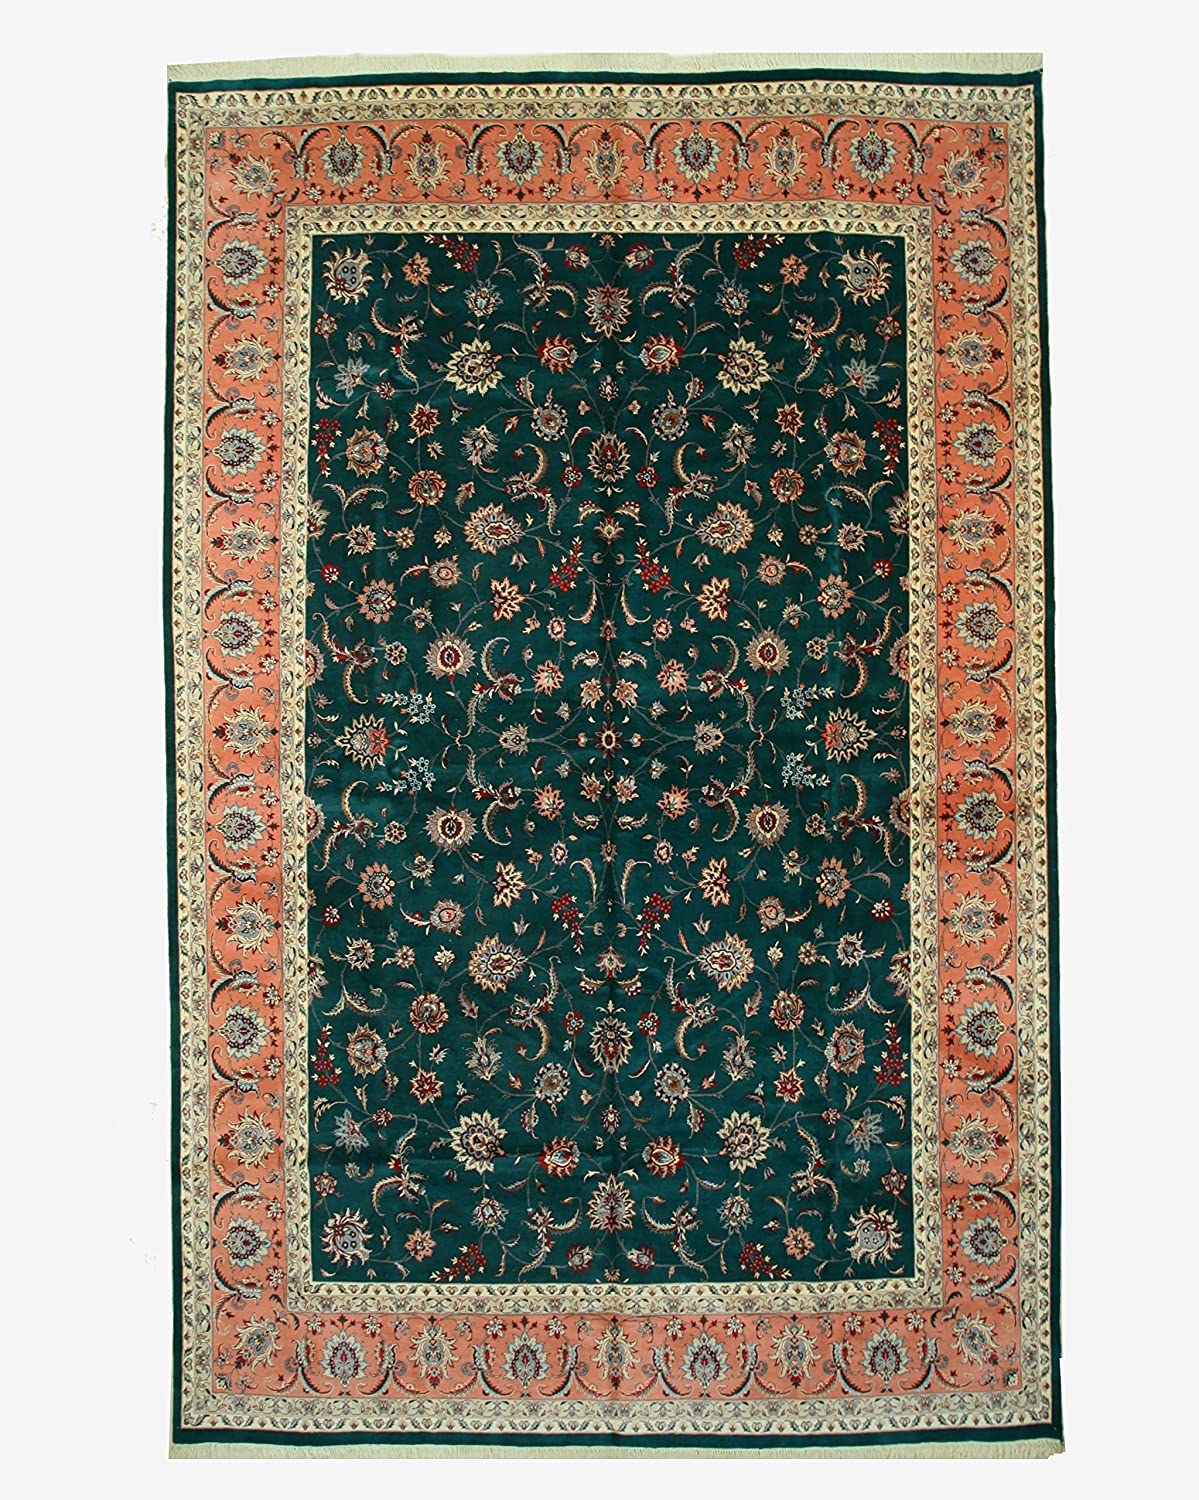 EORC BA2951 Hand-Knotted Wool Pak-Persian 12' x Green Max 71% OFF 18'9 Rug Popularity